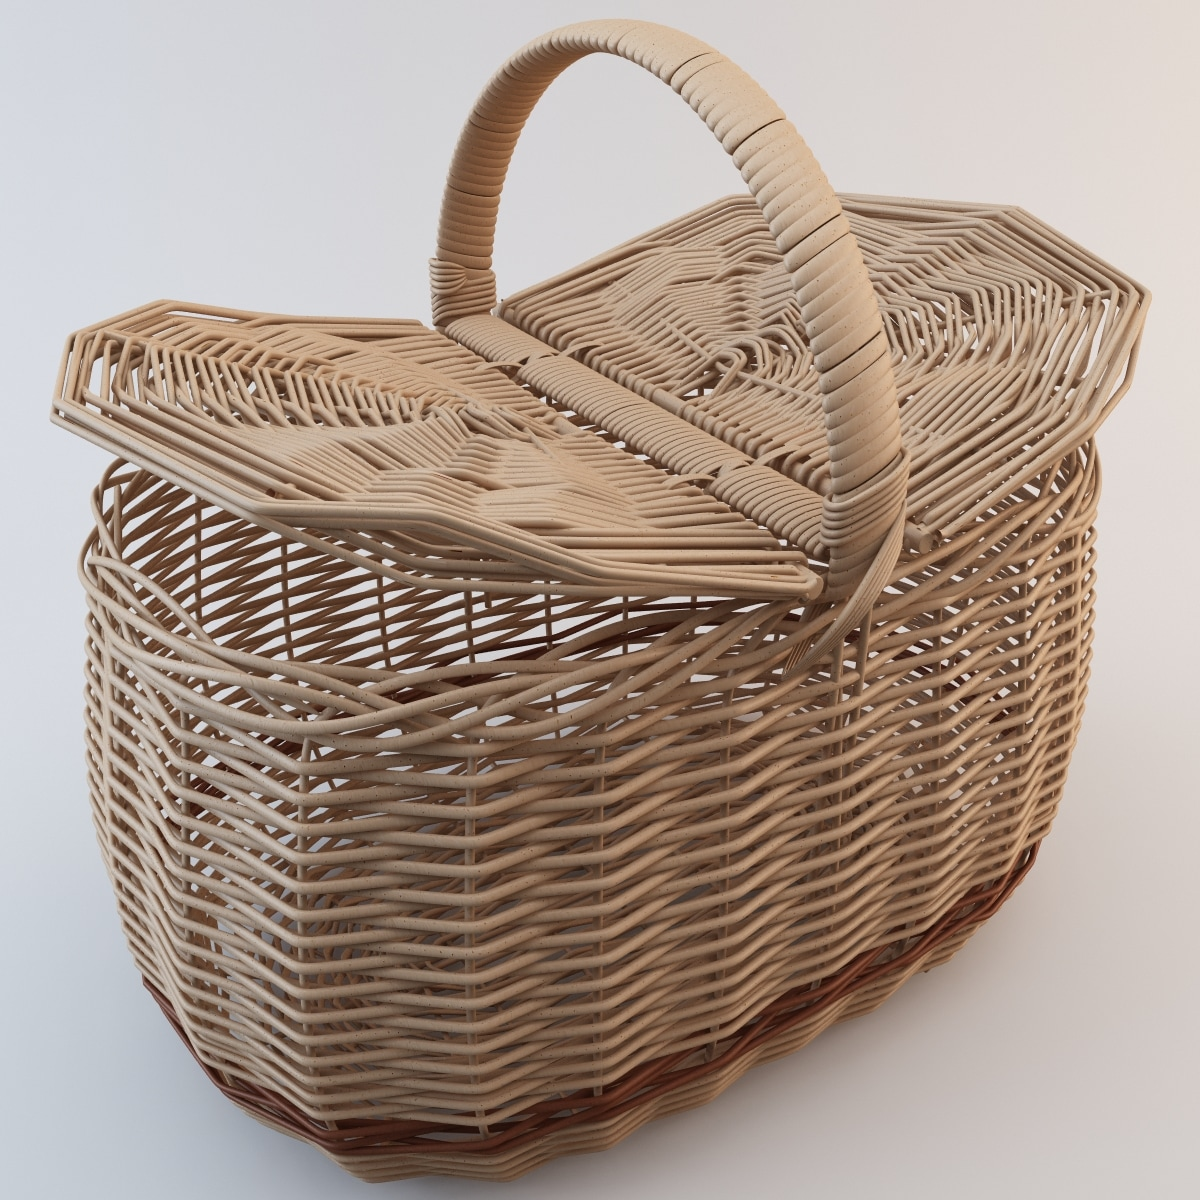 Wicker_Basket_2_002.jpg